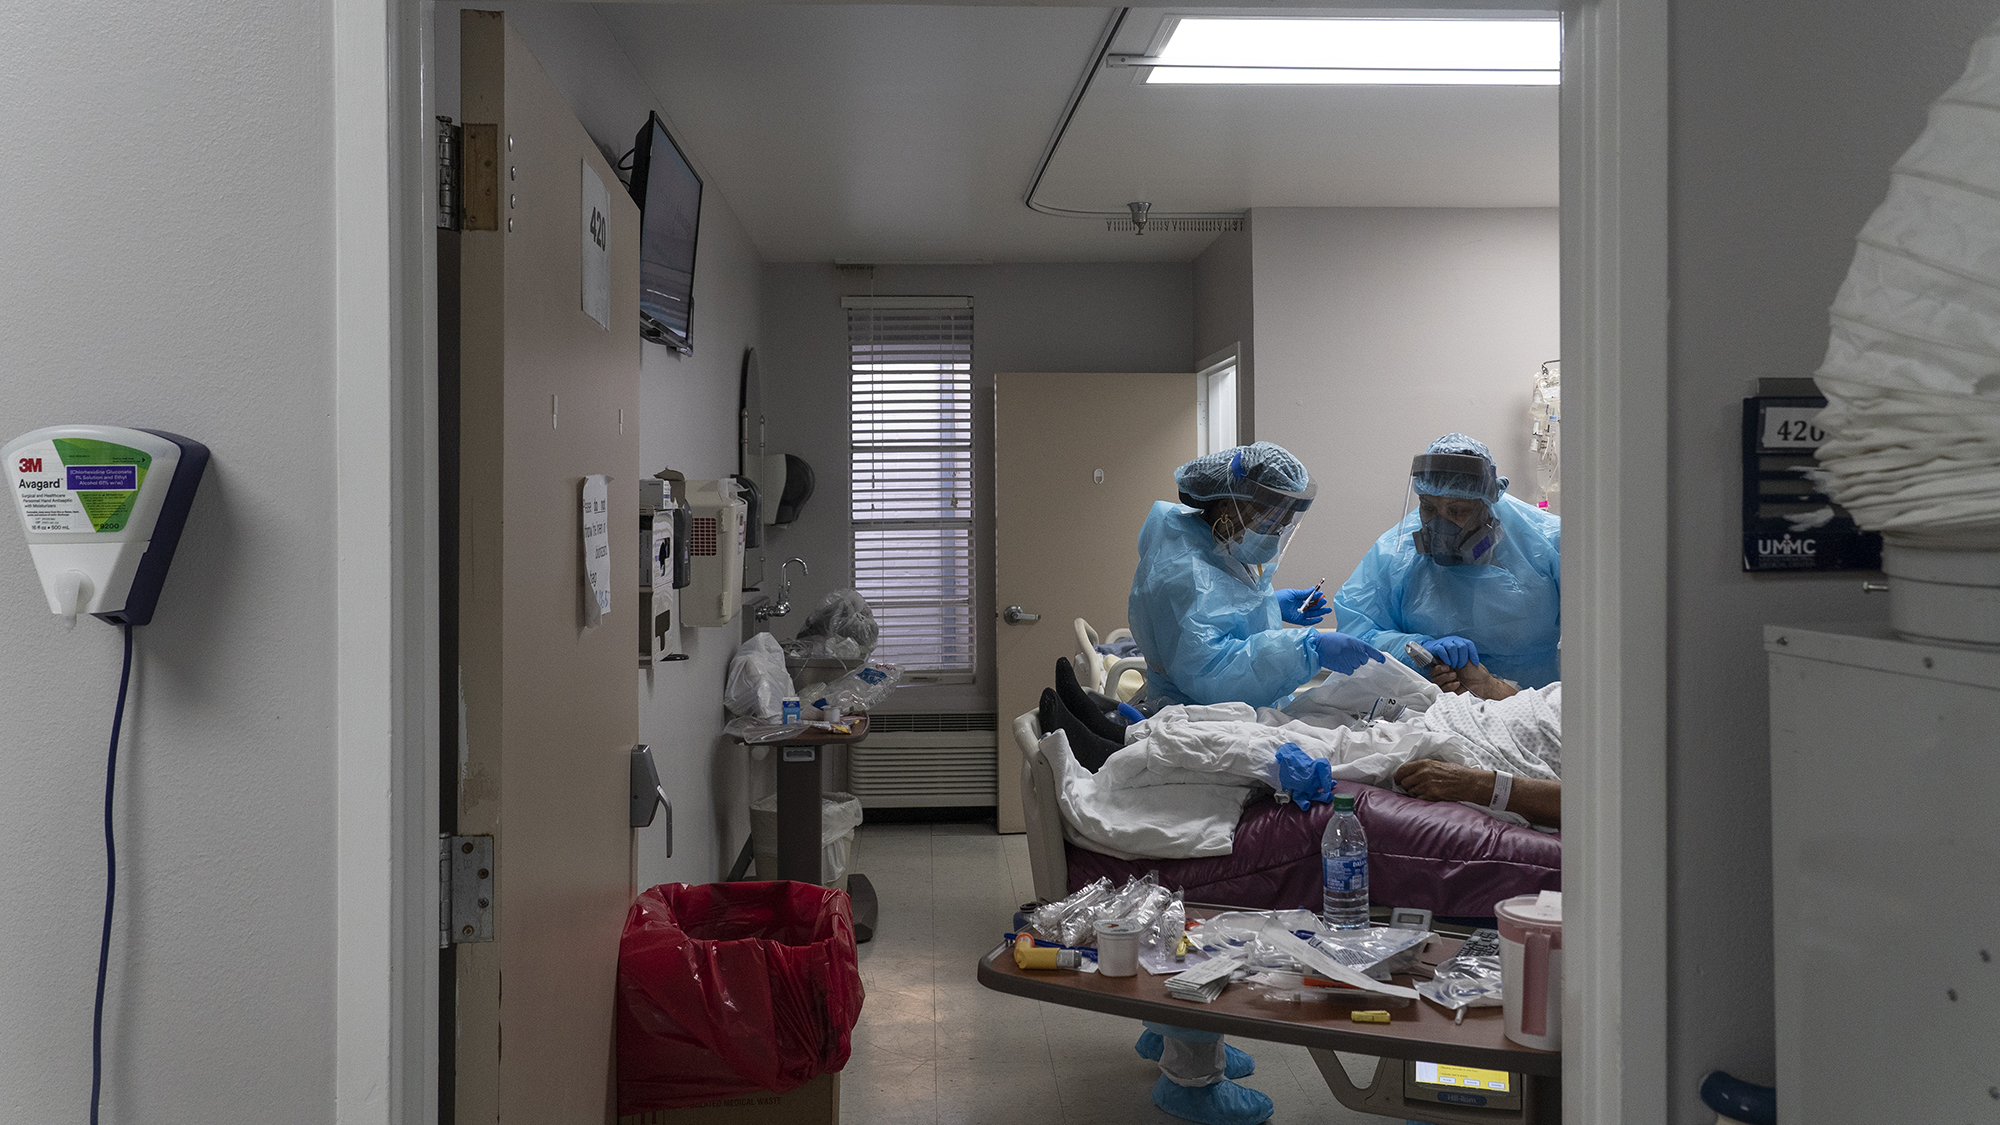 Medical staff members treat a patient suffering from the coronavirus disease in the Covid-19 intensive care unit at the United Memorial Medical Center on November 19 in Houston.